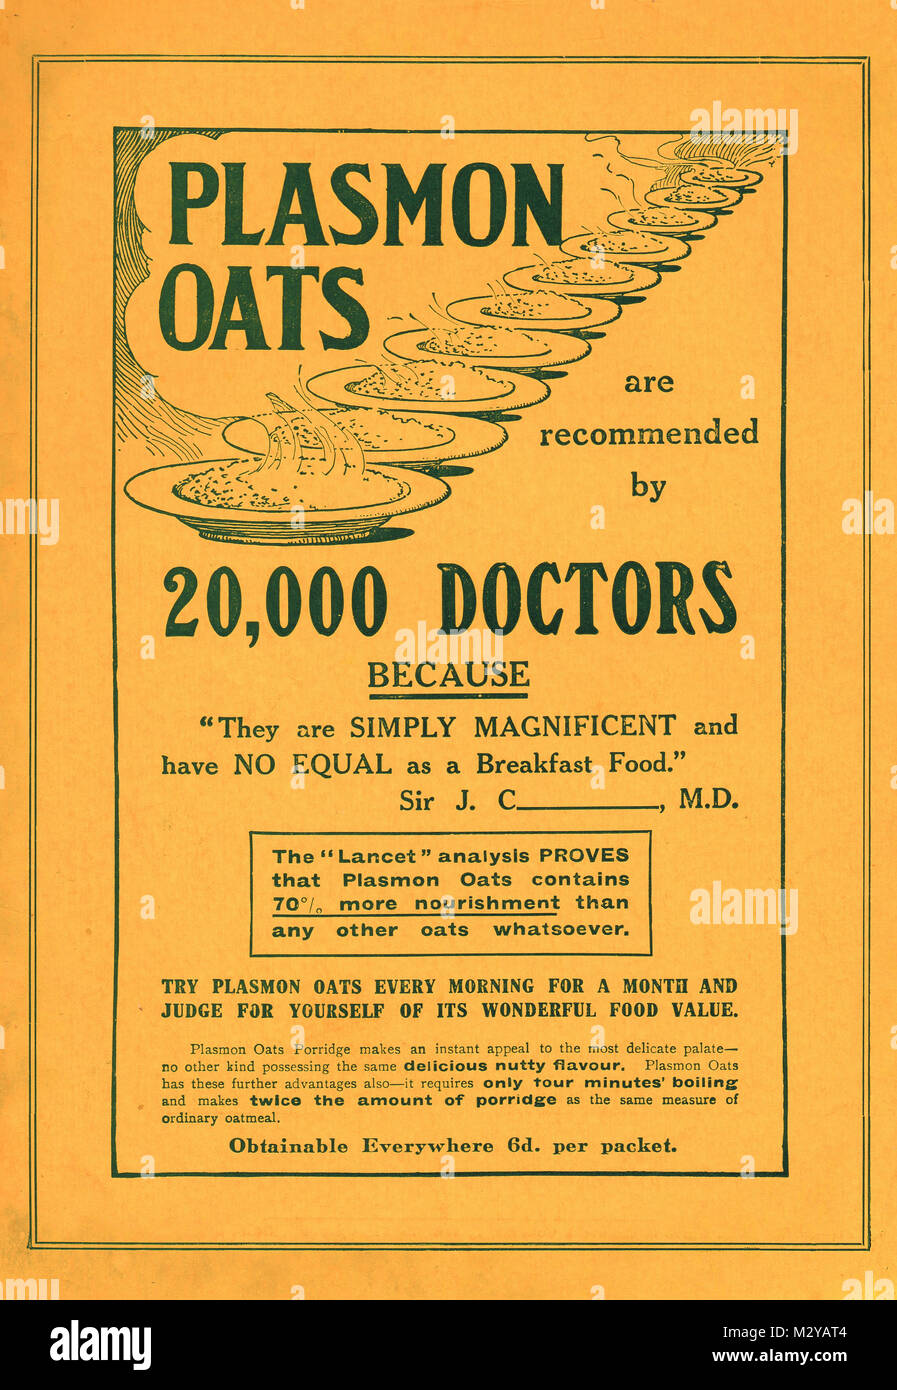 Plasmon Oats advert, circa 1901, Recommended by no less than 20,000 doctors! - Stock Image